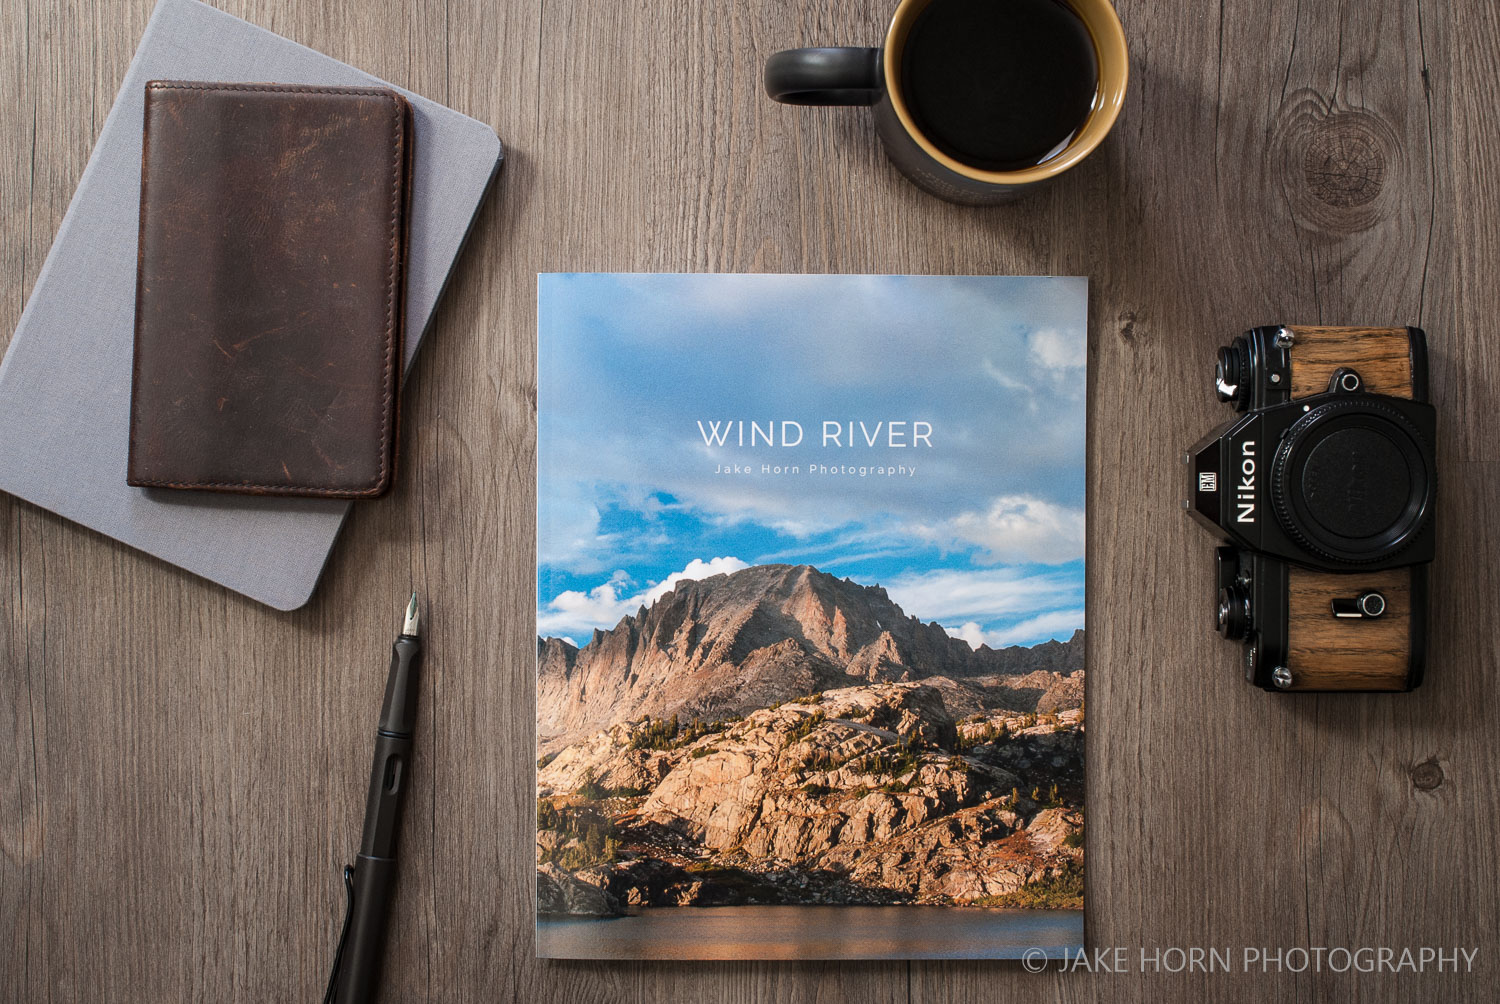 wind_river_book_004.jpg